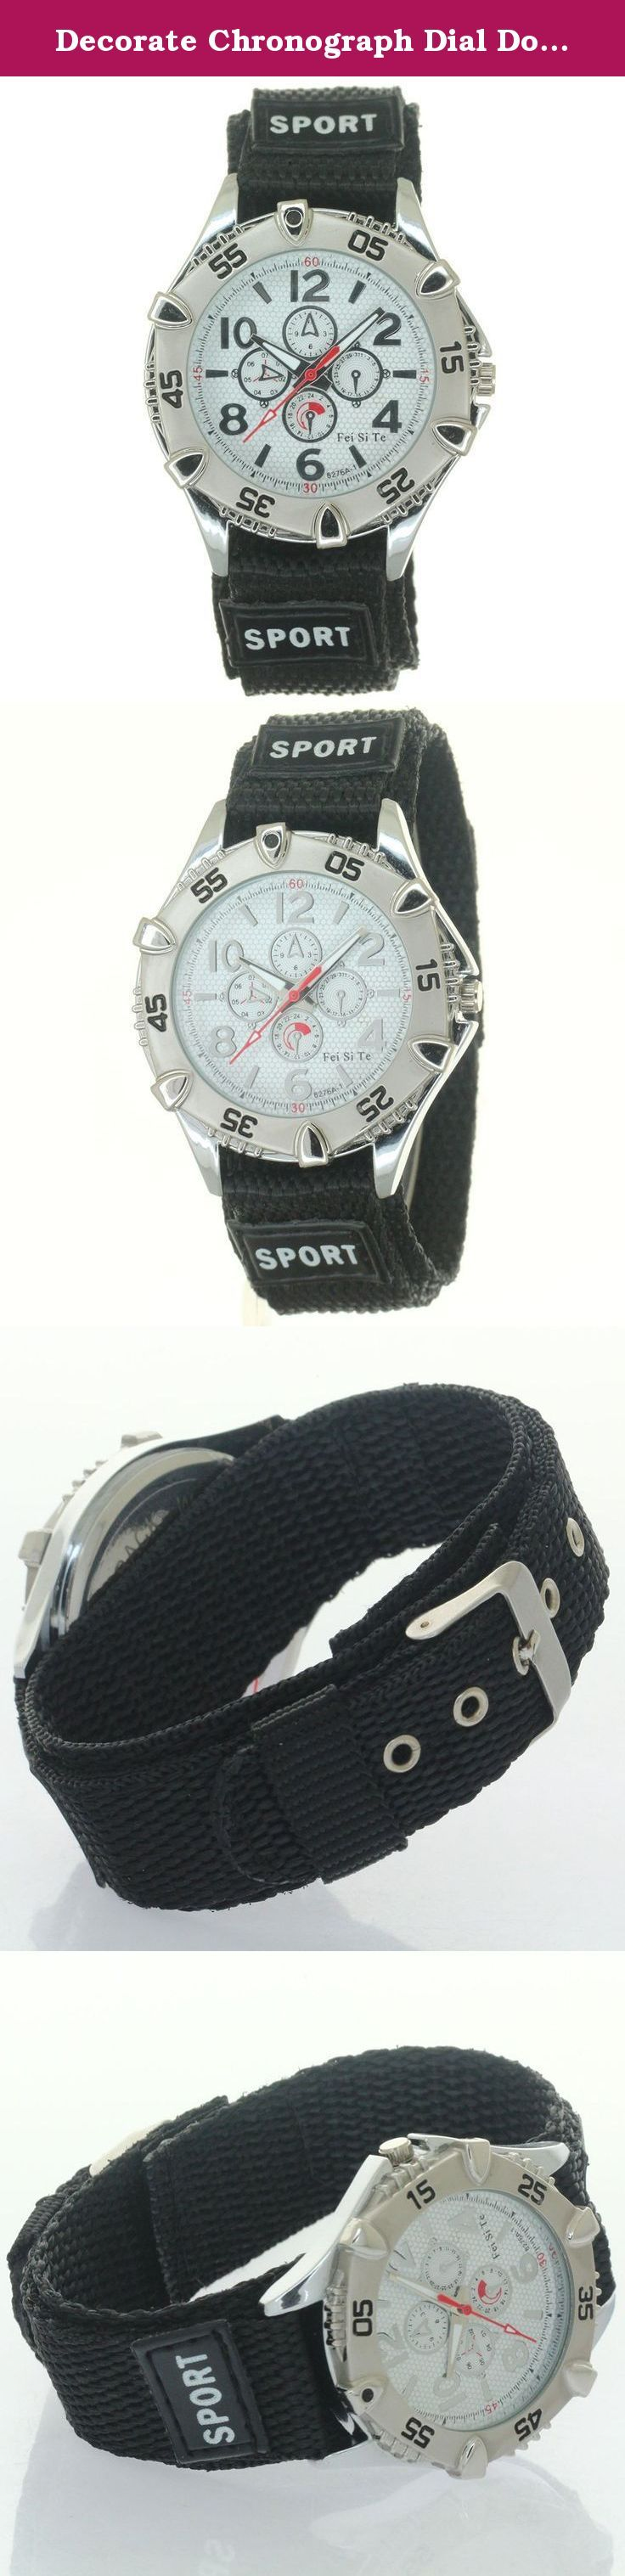 Decorate Chronograph Dial Double Layer Nylon Fabric Strap Band Velcro Buckle Sport Quartz Wristwatch. Decorate Chronograph Dial Double Layer Nylon Fabric Strap Band Velcro Buckle Sport Quartz Wristwatch Double Layer Nylon Watch Strap Velcro Fastener Polished Buckle Functional uni-direction bezel crown Decorate Chronograph Numeral Dial Japan Precision Movement Inside. Quartz Wristwatch. Short straps not fit strong big wrists. Men Women Boys Girls Kids Students all Fits.